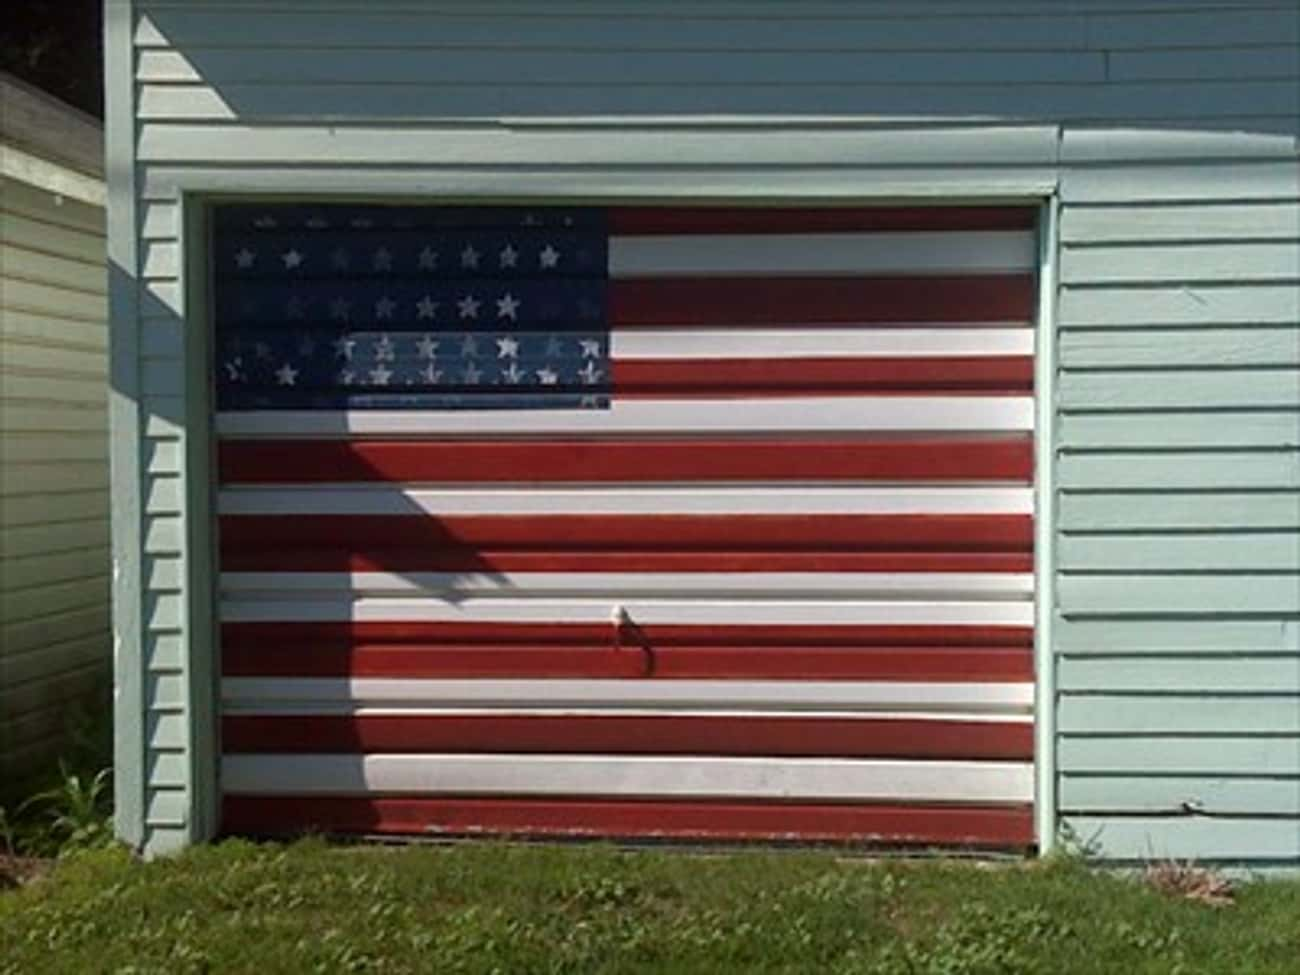 USA! USA! USA! is listed (or ranked) 4 on the list The Most Creative Garage Door Art of All Time